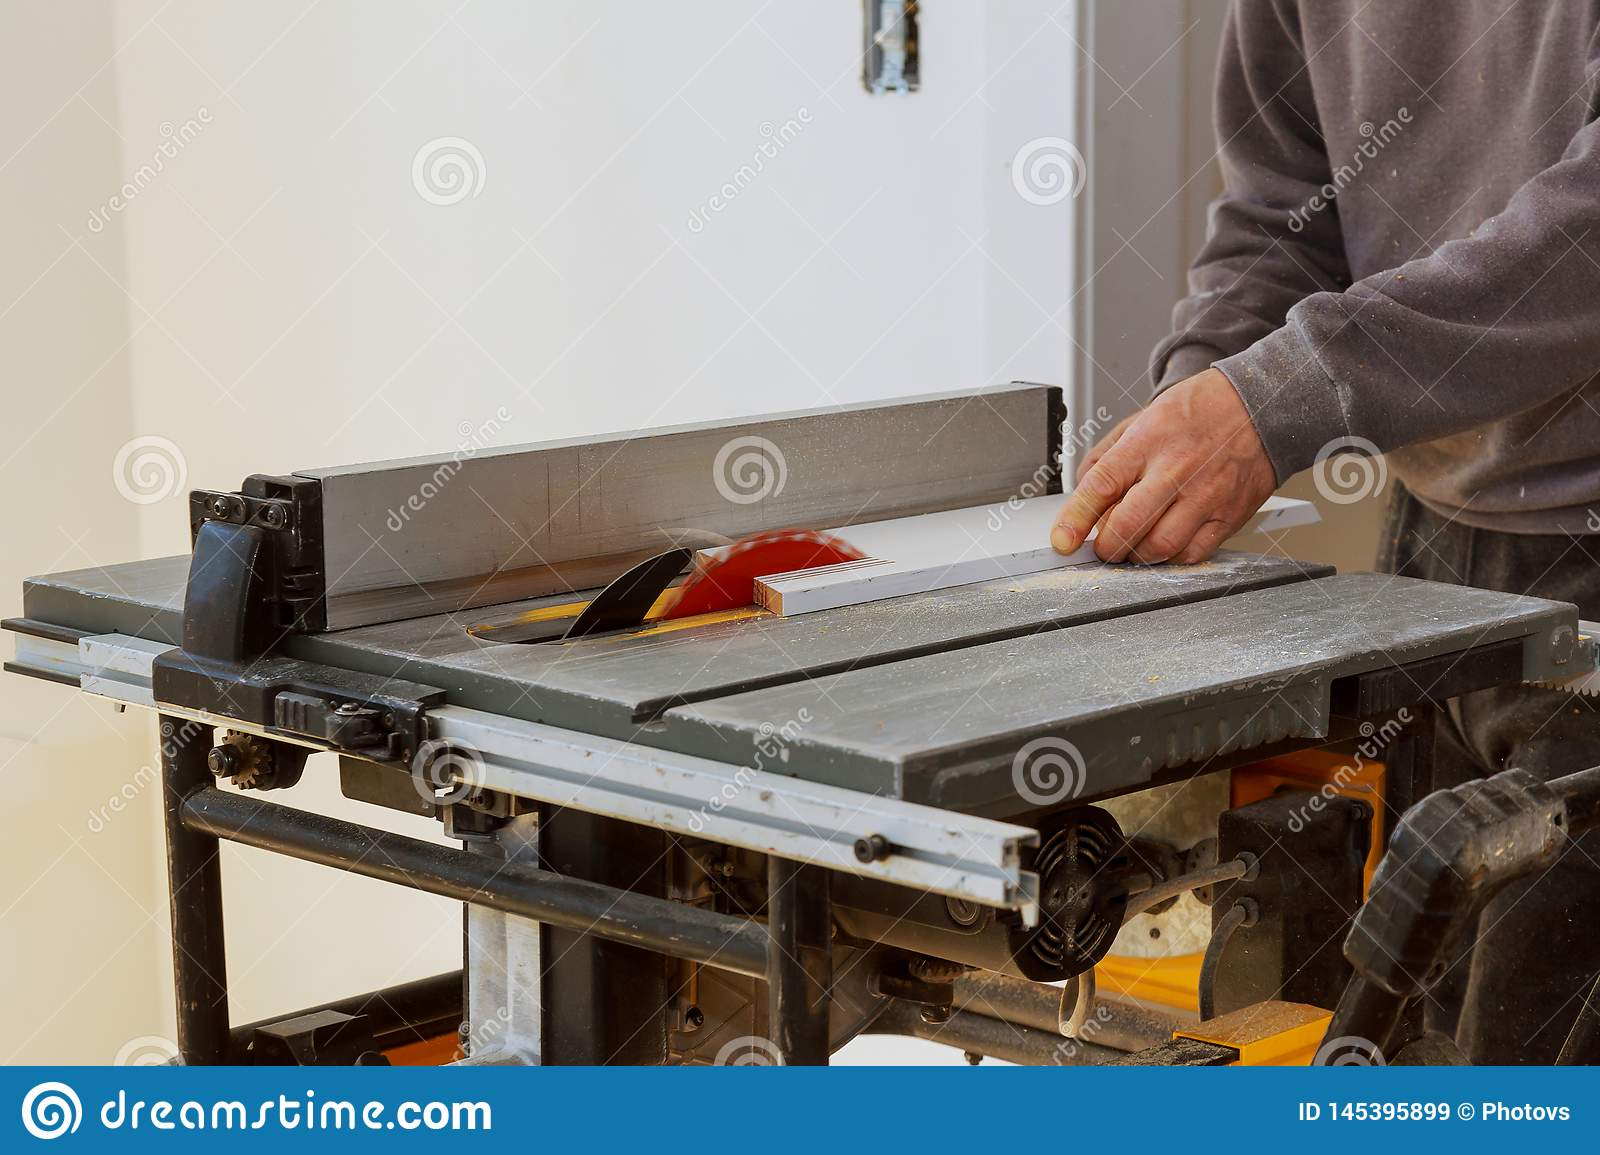 Construction remodeling home cutting wooden trim board on with circular saw